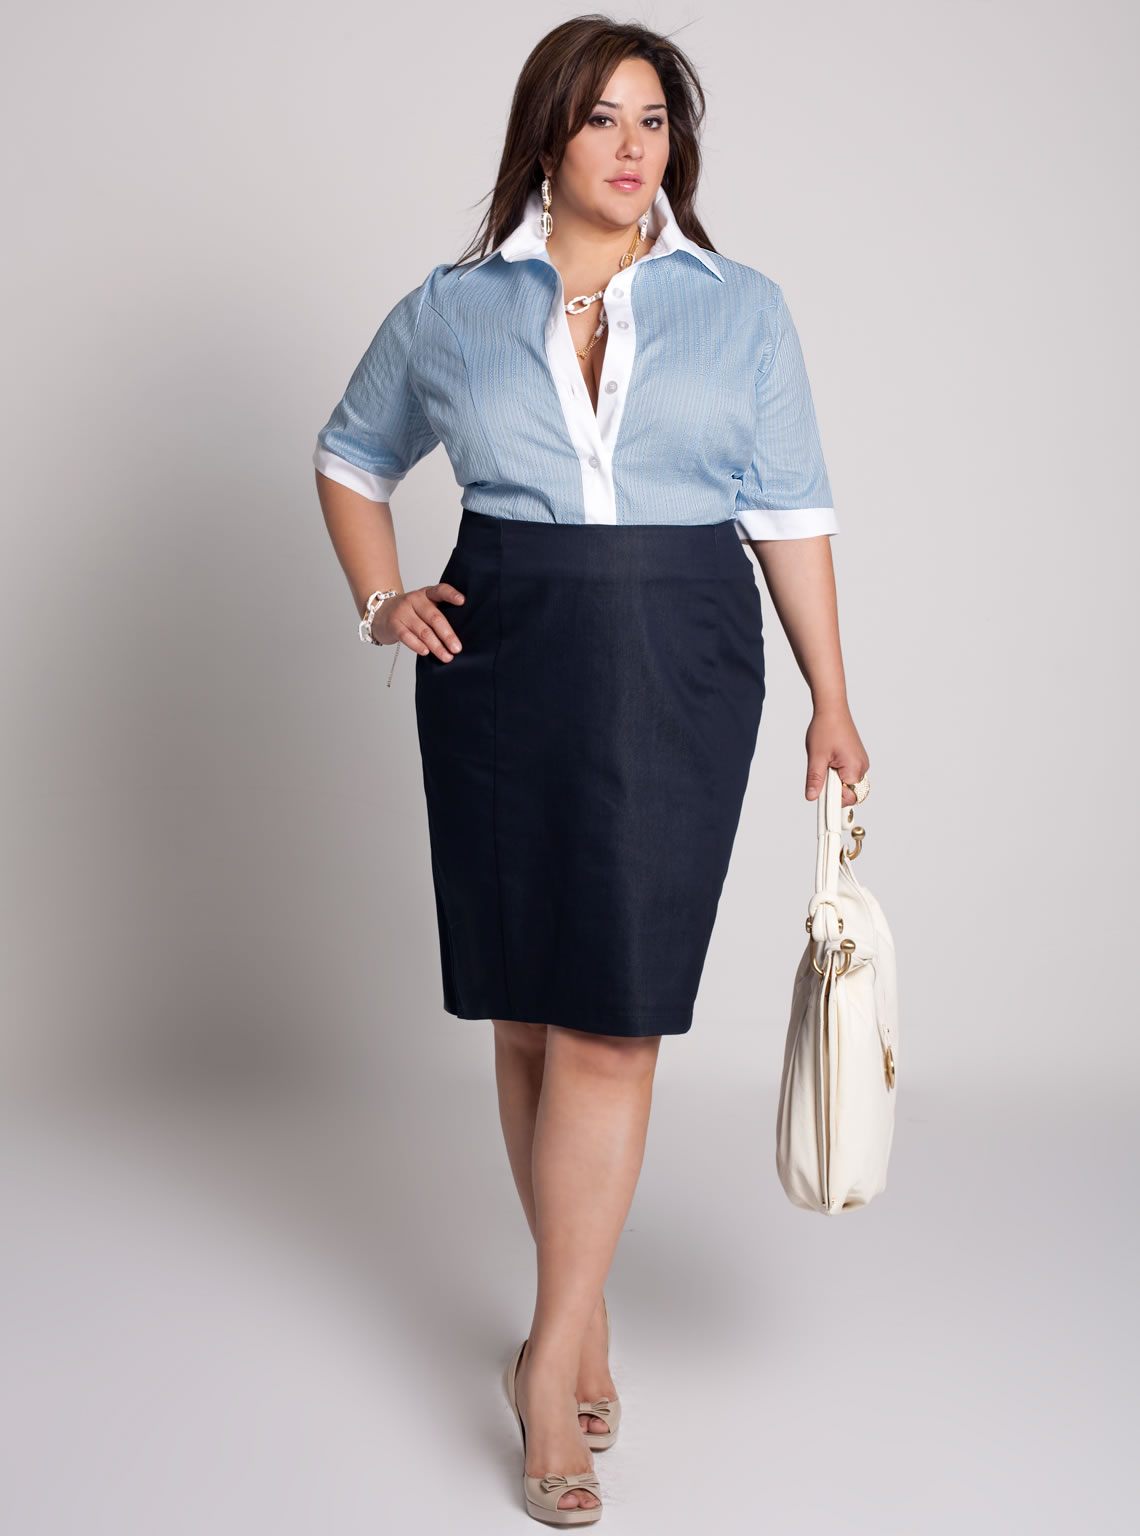 Get the looks you love with women's plus size clothing from Forever Shop the hottest new dresses, bodysuits, tops, pants, jackets, overalls & more!